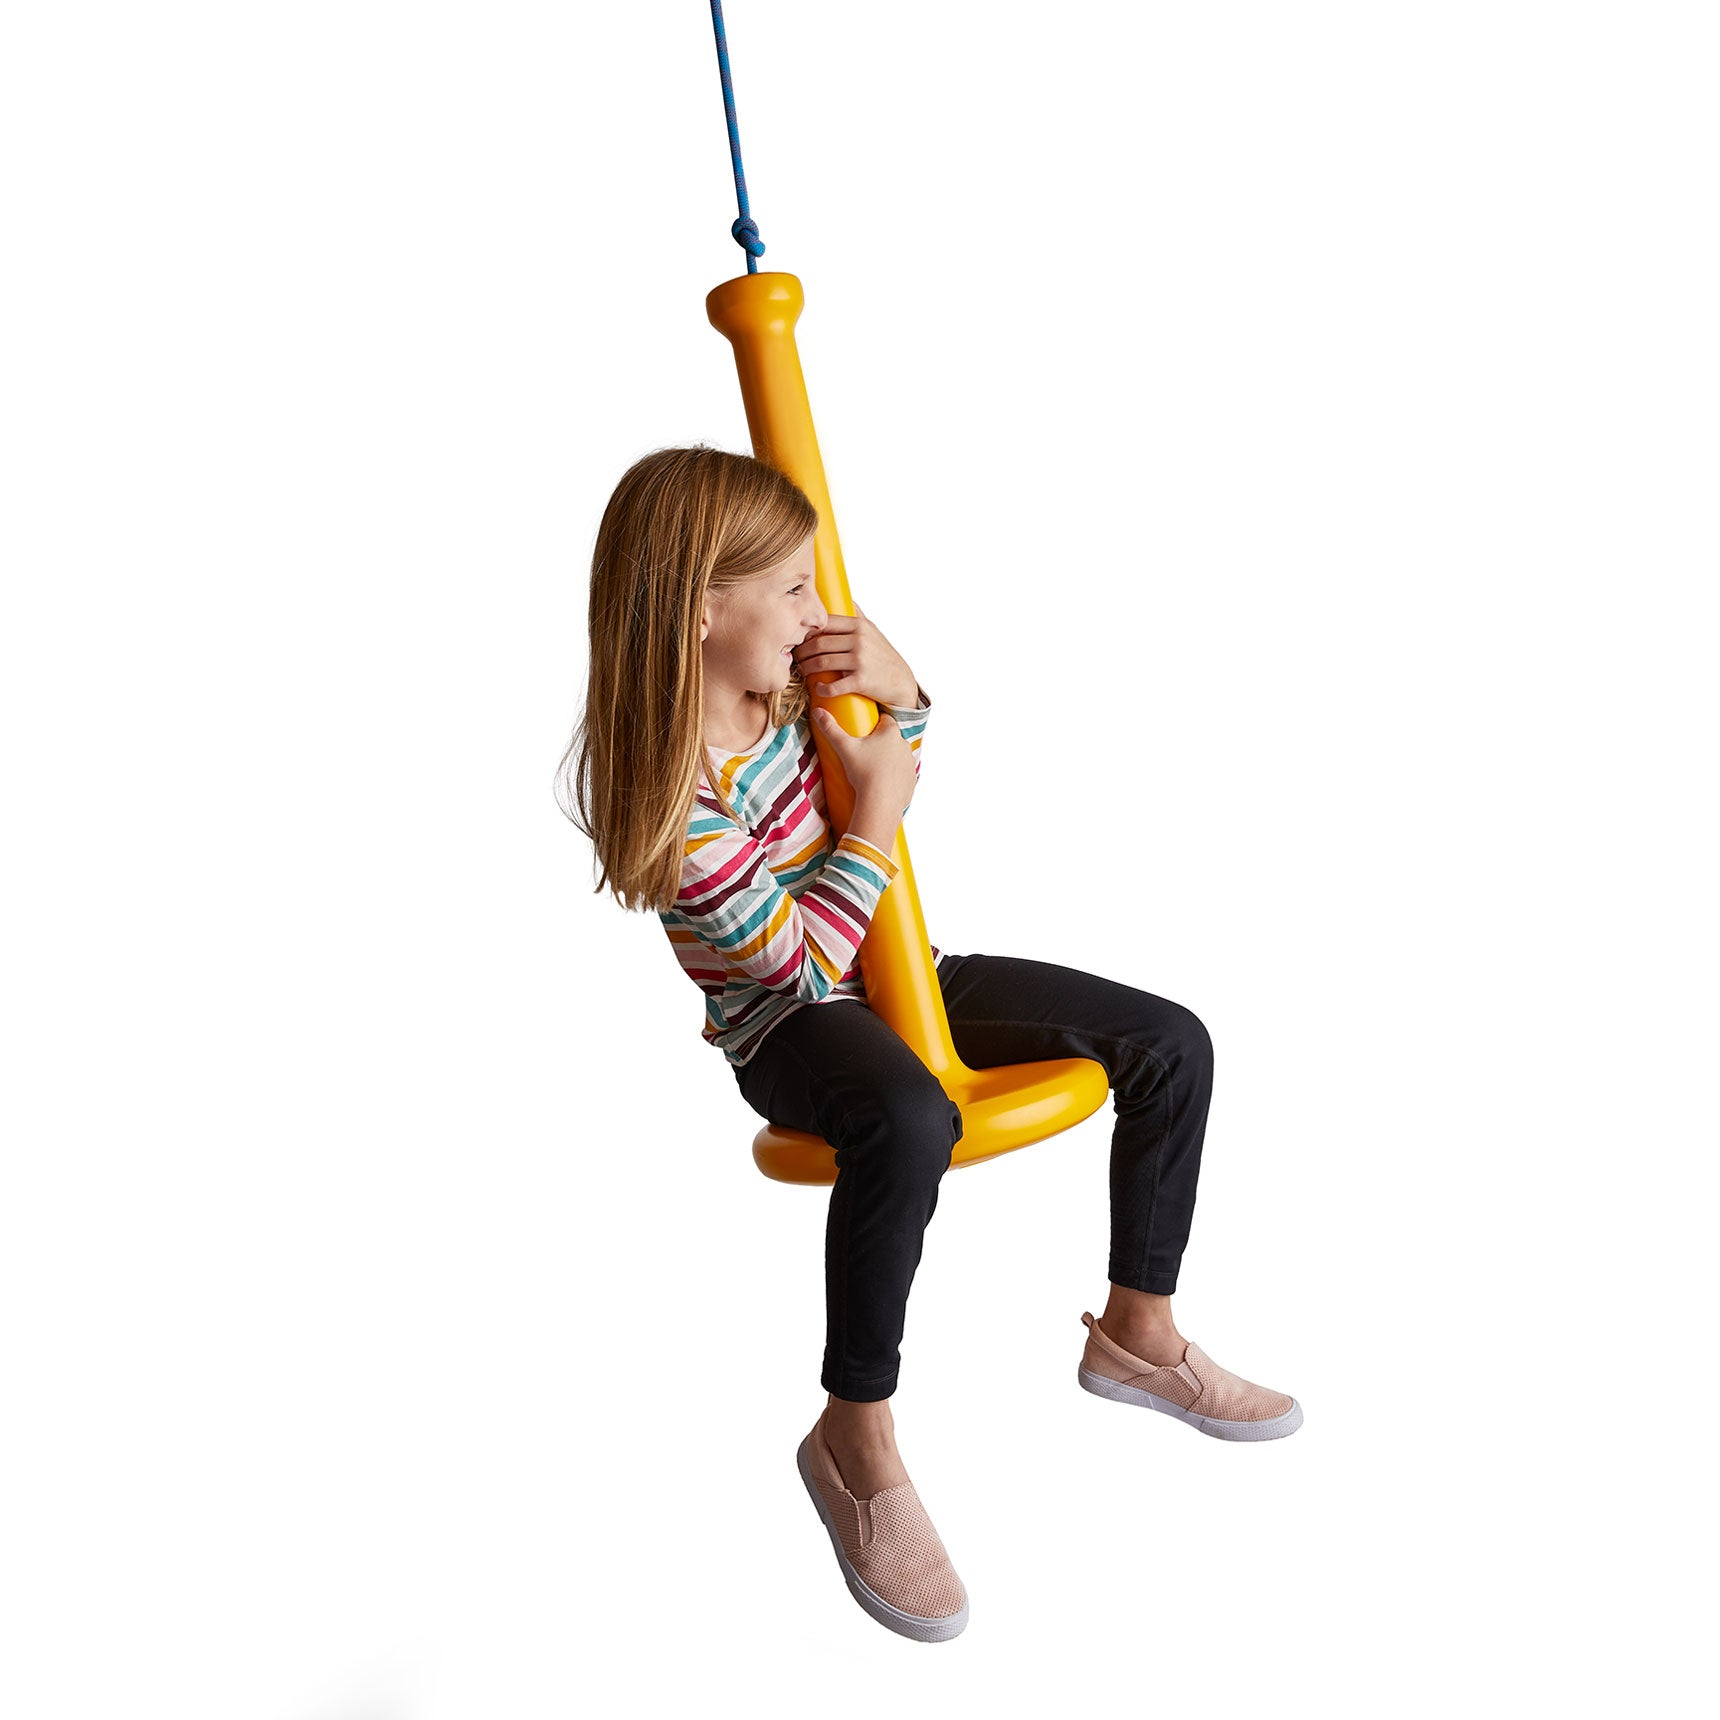 Most Fun Tree Swing For Kids  Made of Plastic and Durable for All-Weather Use Sunshine Yellow | Child on Swing